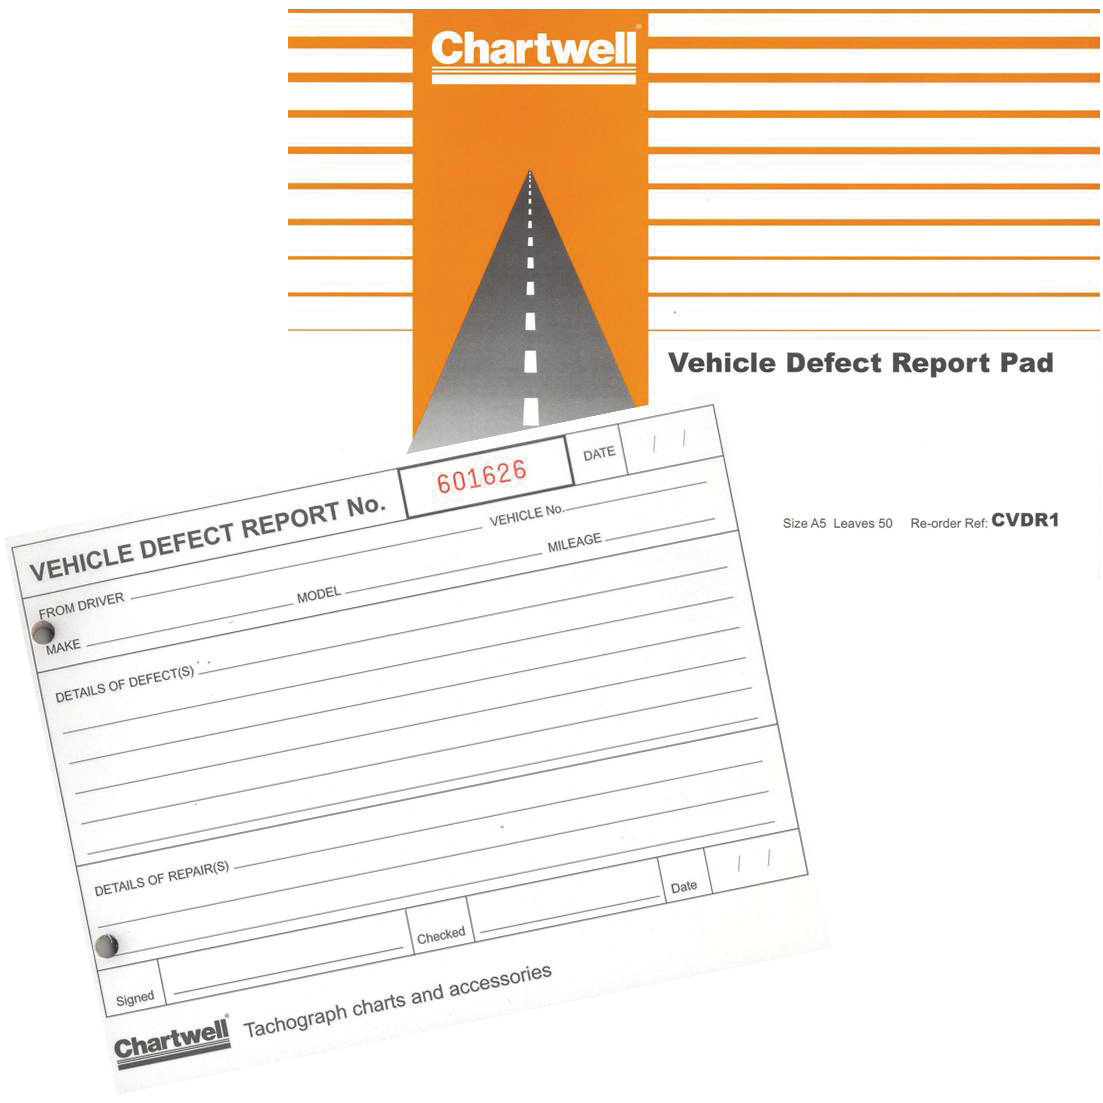 Image for Chartwell Tachograph Vehicle Defect Report Pad 50 Sheets Ref CVDR1